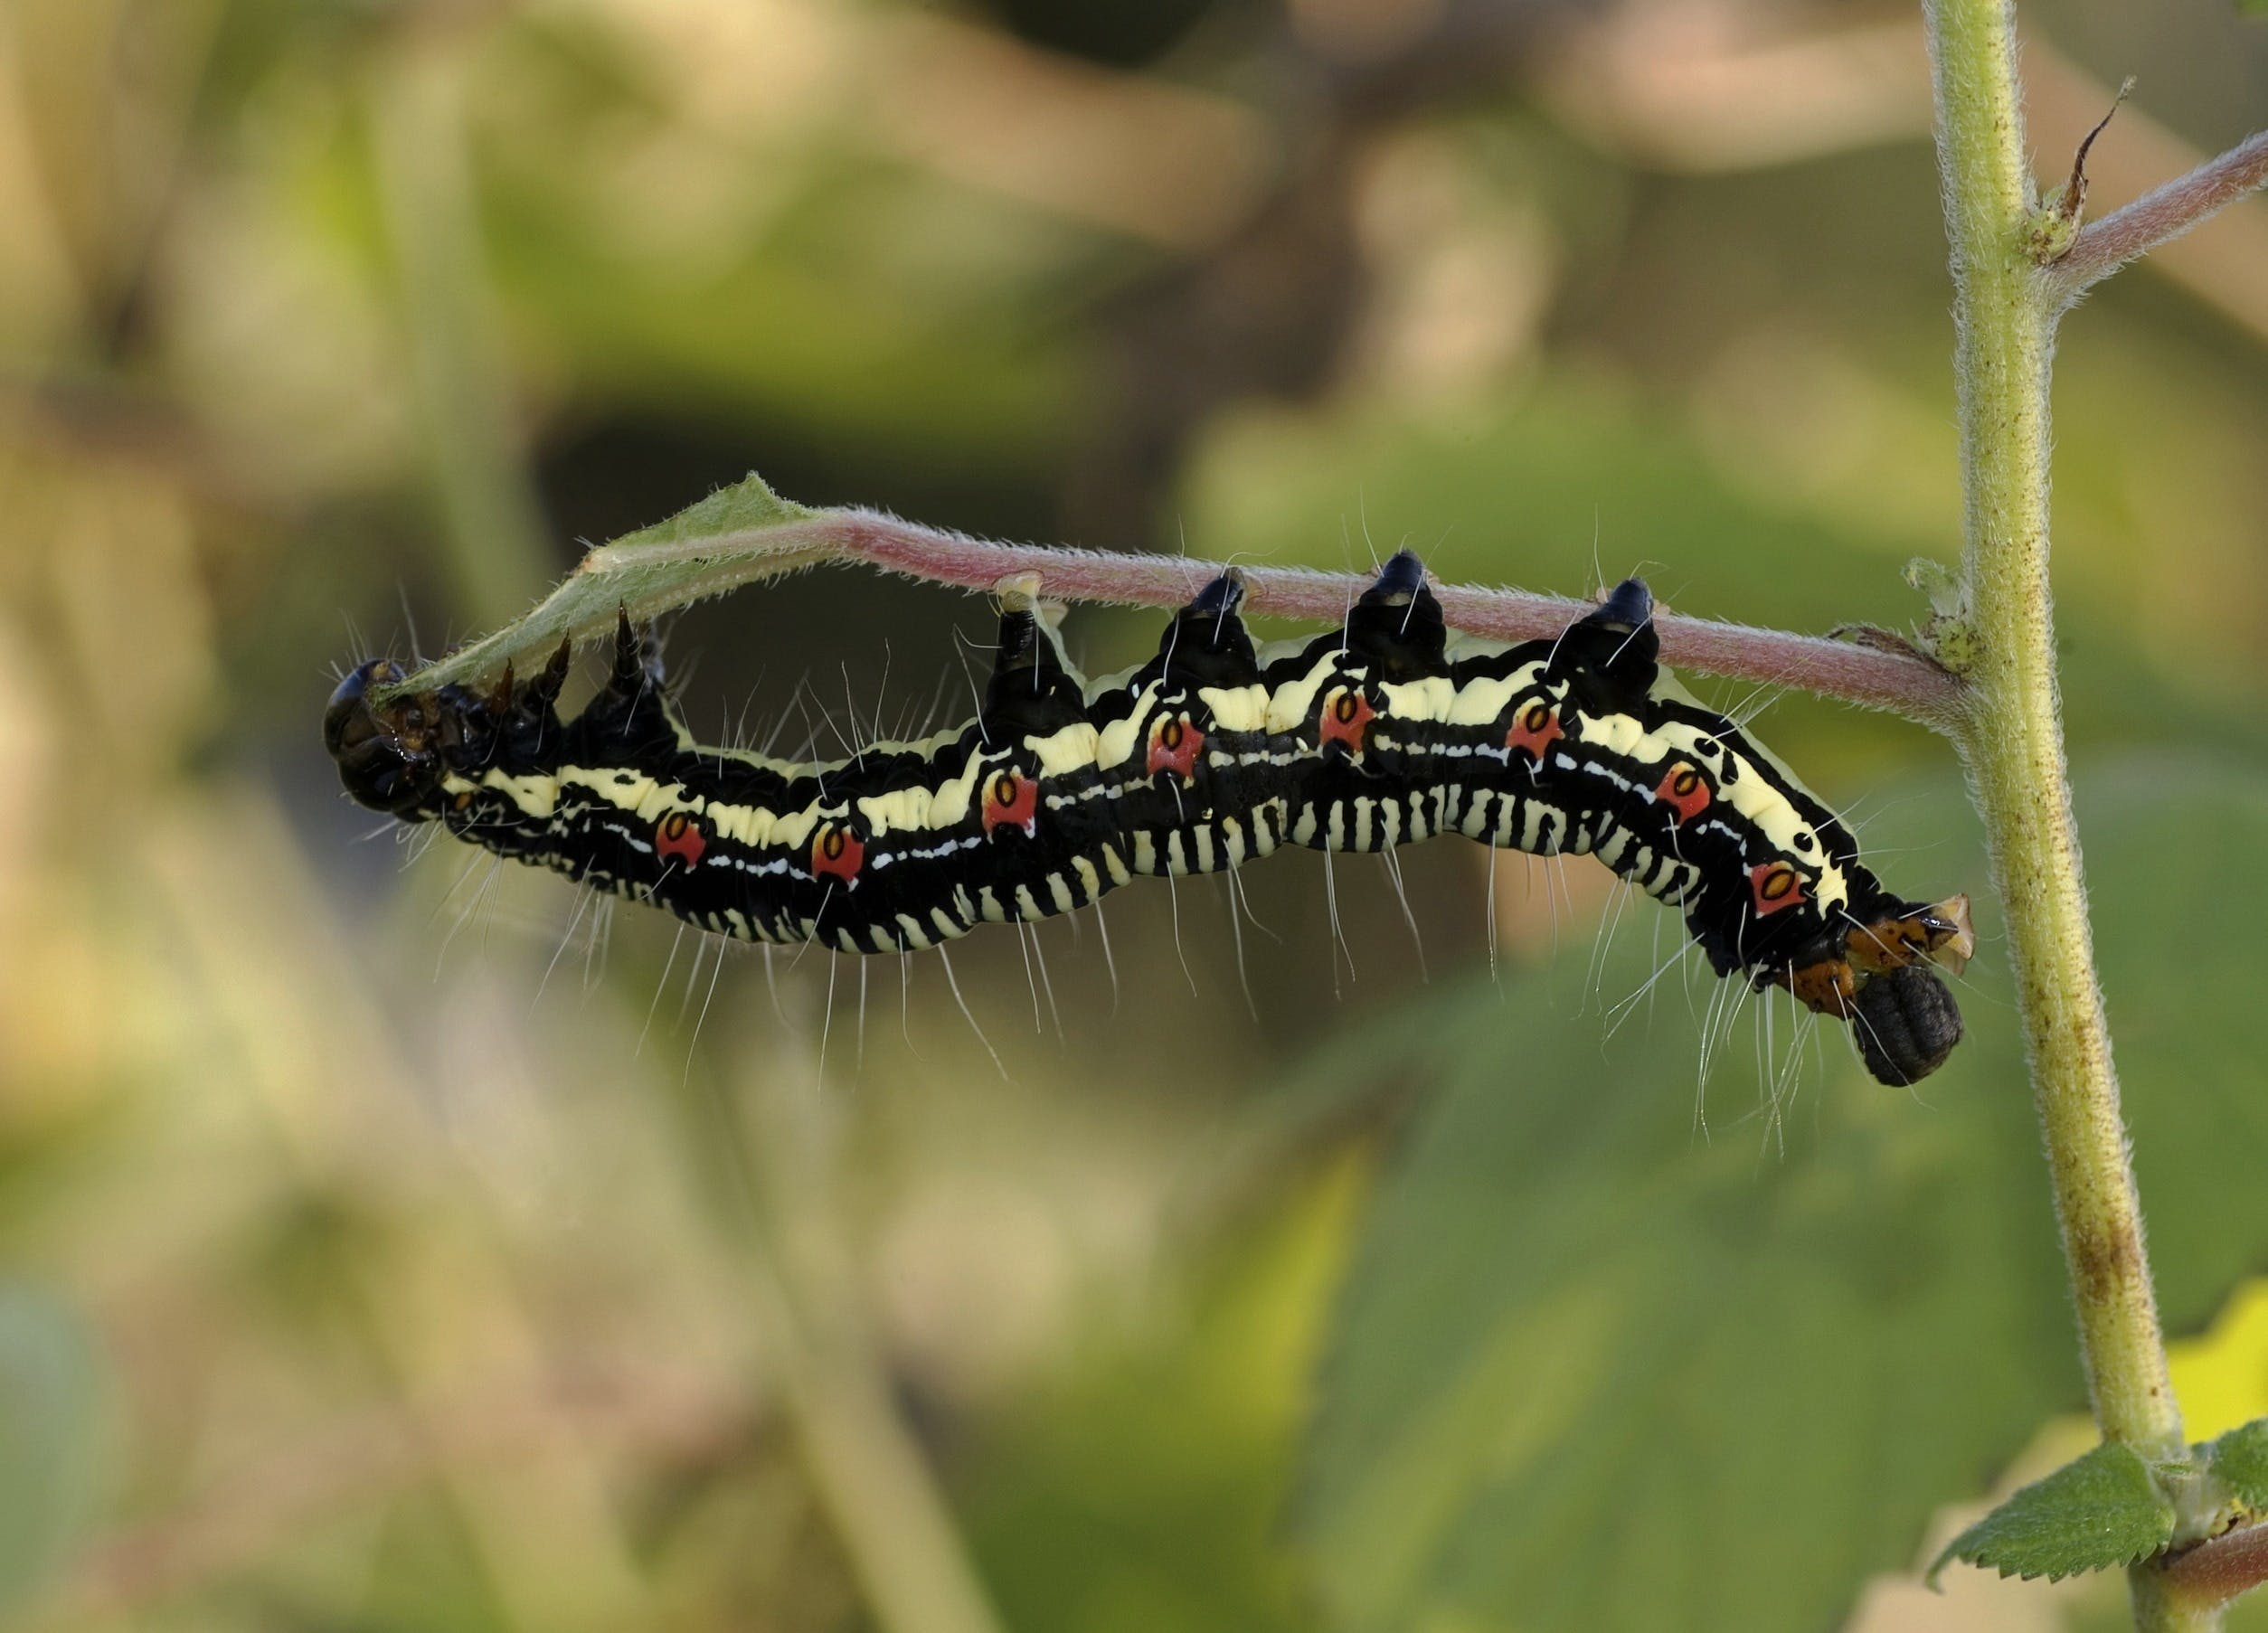 Black White and Brown Caterpillar on Green Grass